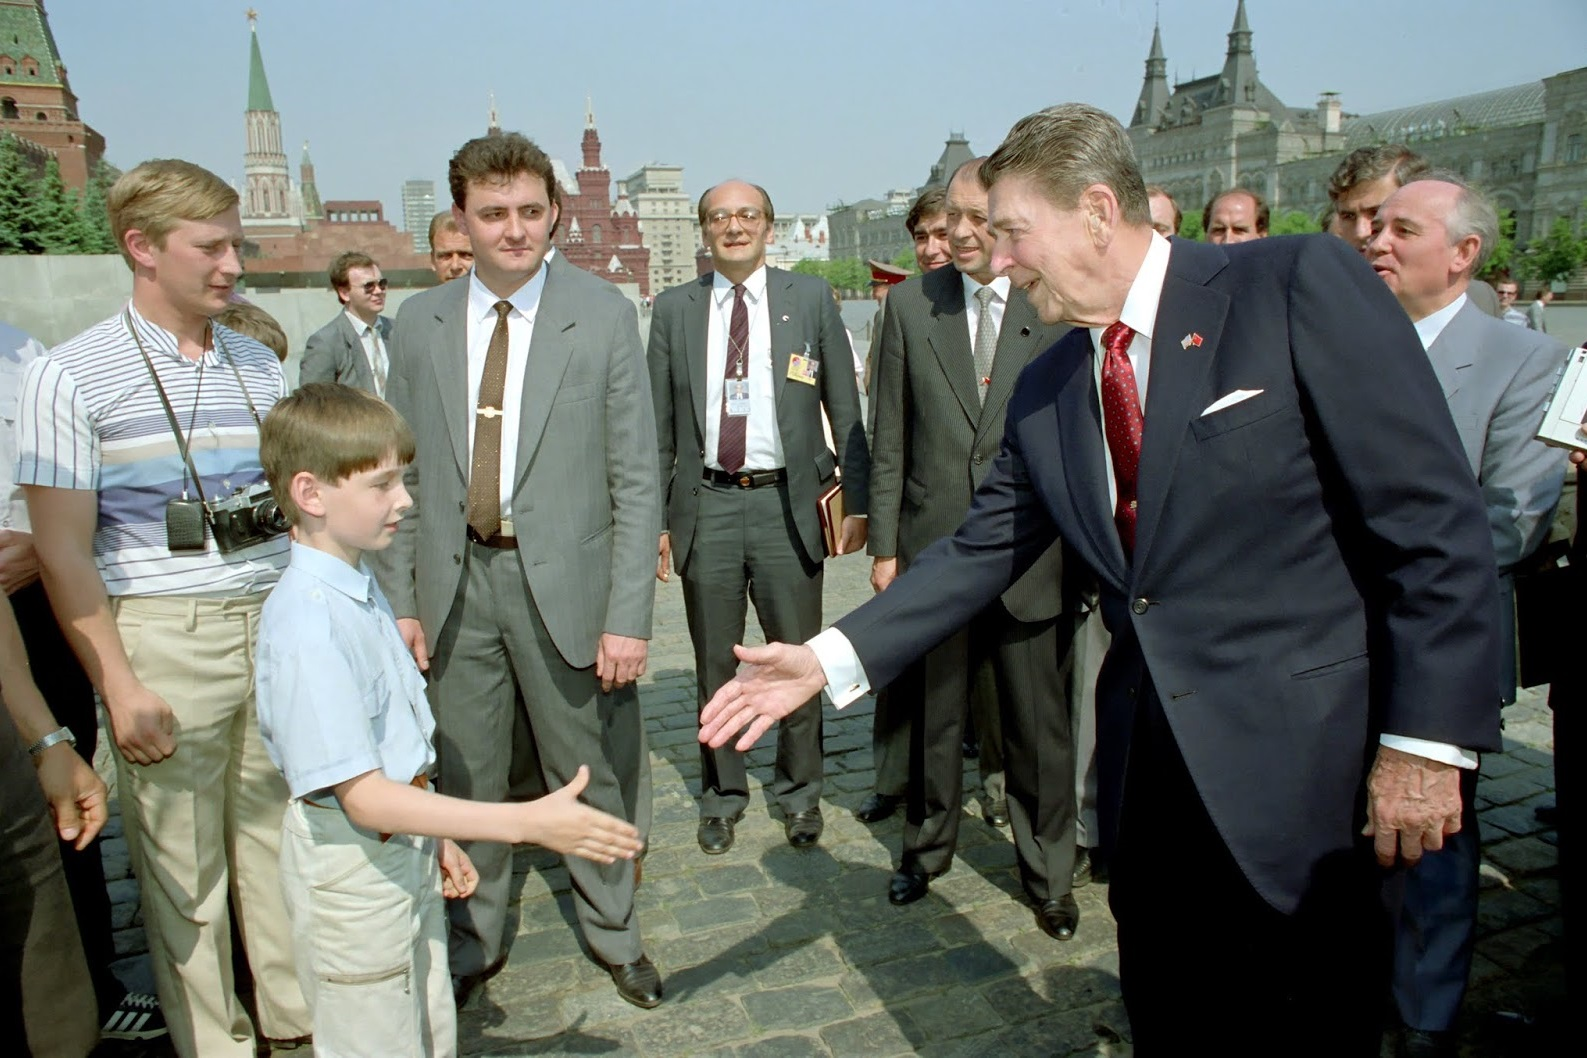 reagan-meeting-putin-souza-photo (1).jpg